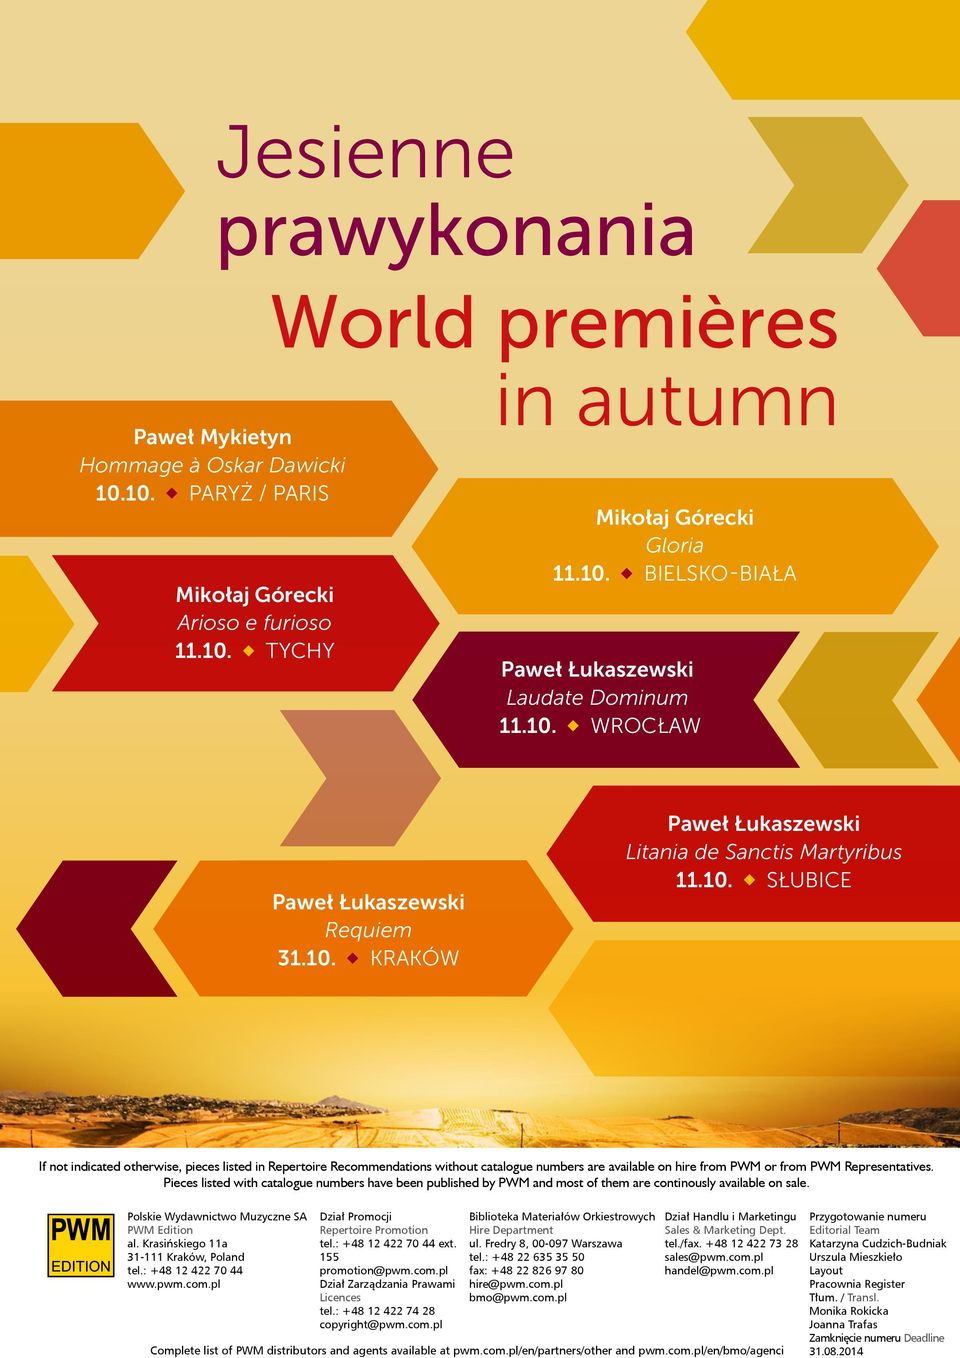 Pieces listed with catalogue numbers have been published by PWM and most of them are continously available on sale. Polskie Wydawnictwo Muzyczne SA PWM Edition al.